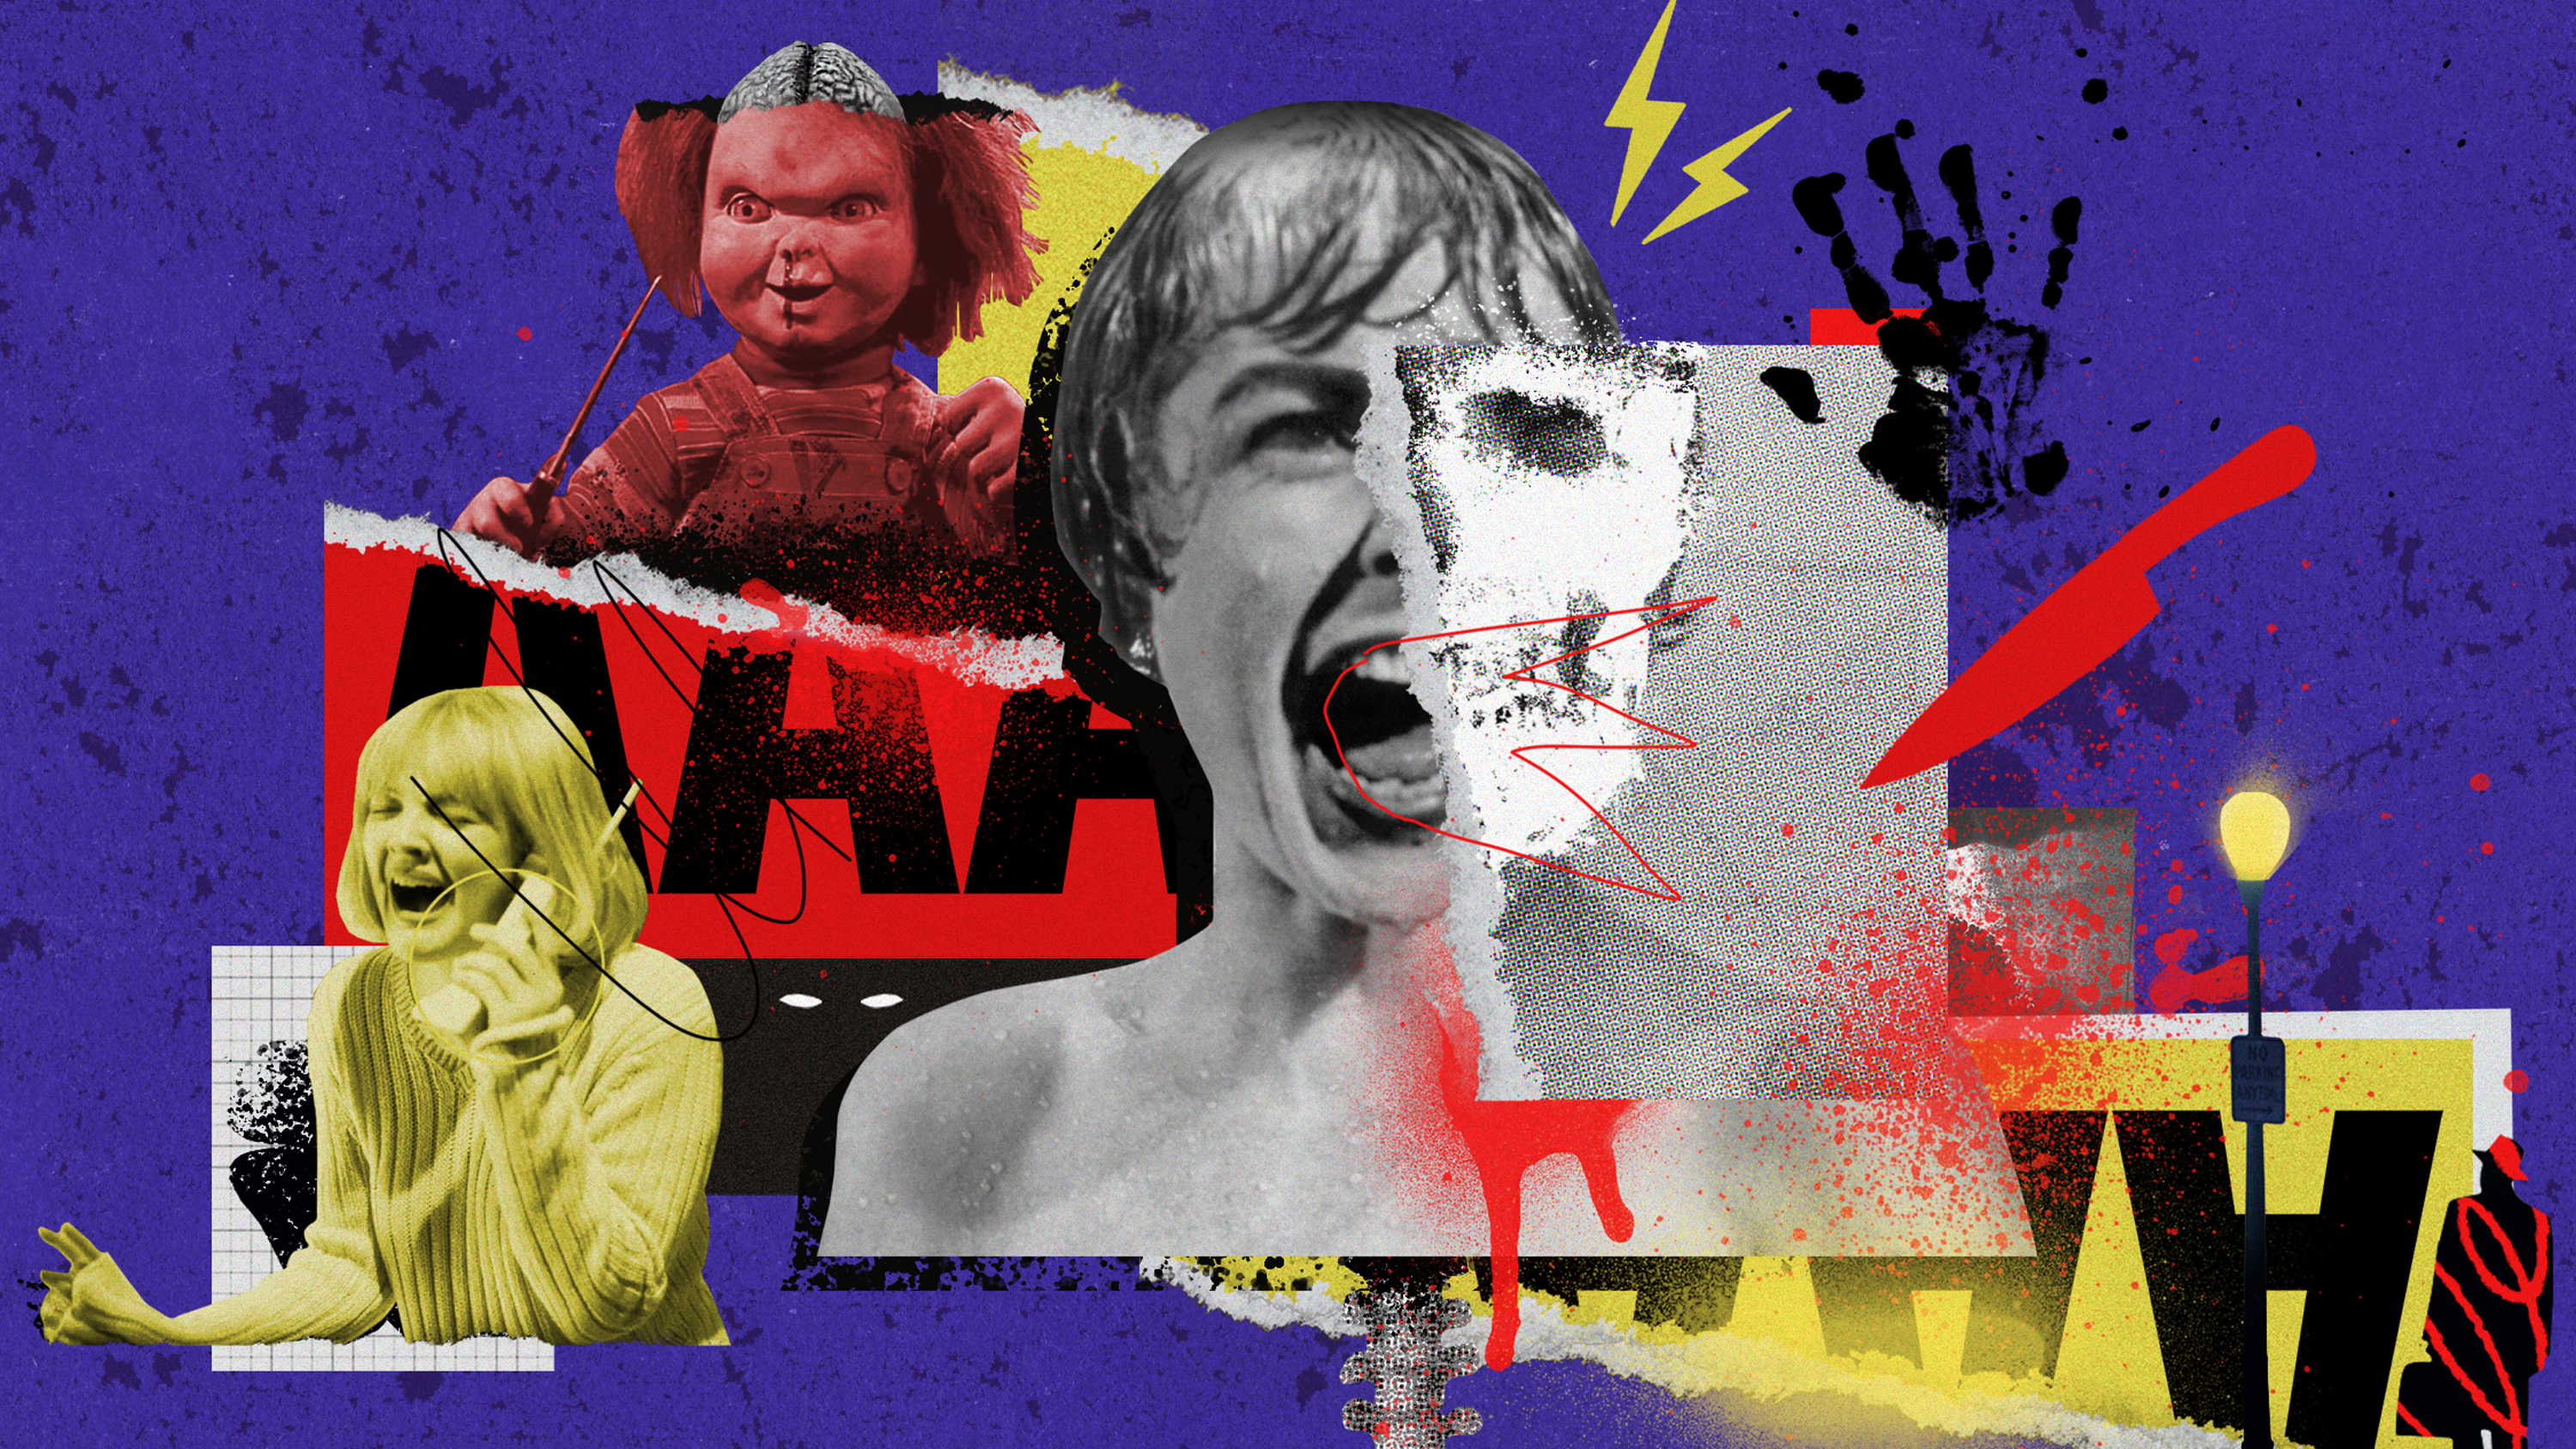 Collage featuring images from the movies Psycho, Scream and Chucky